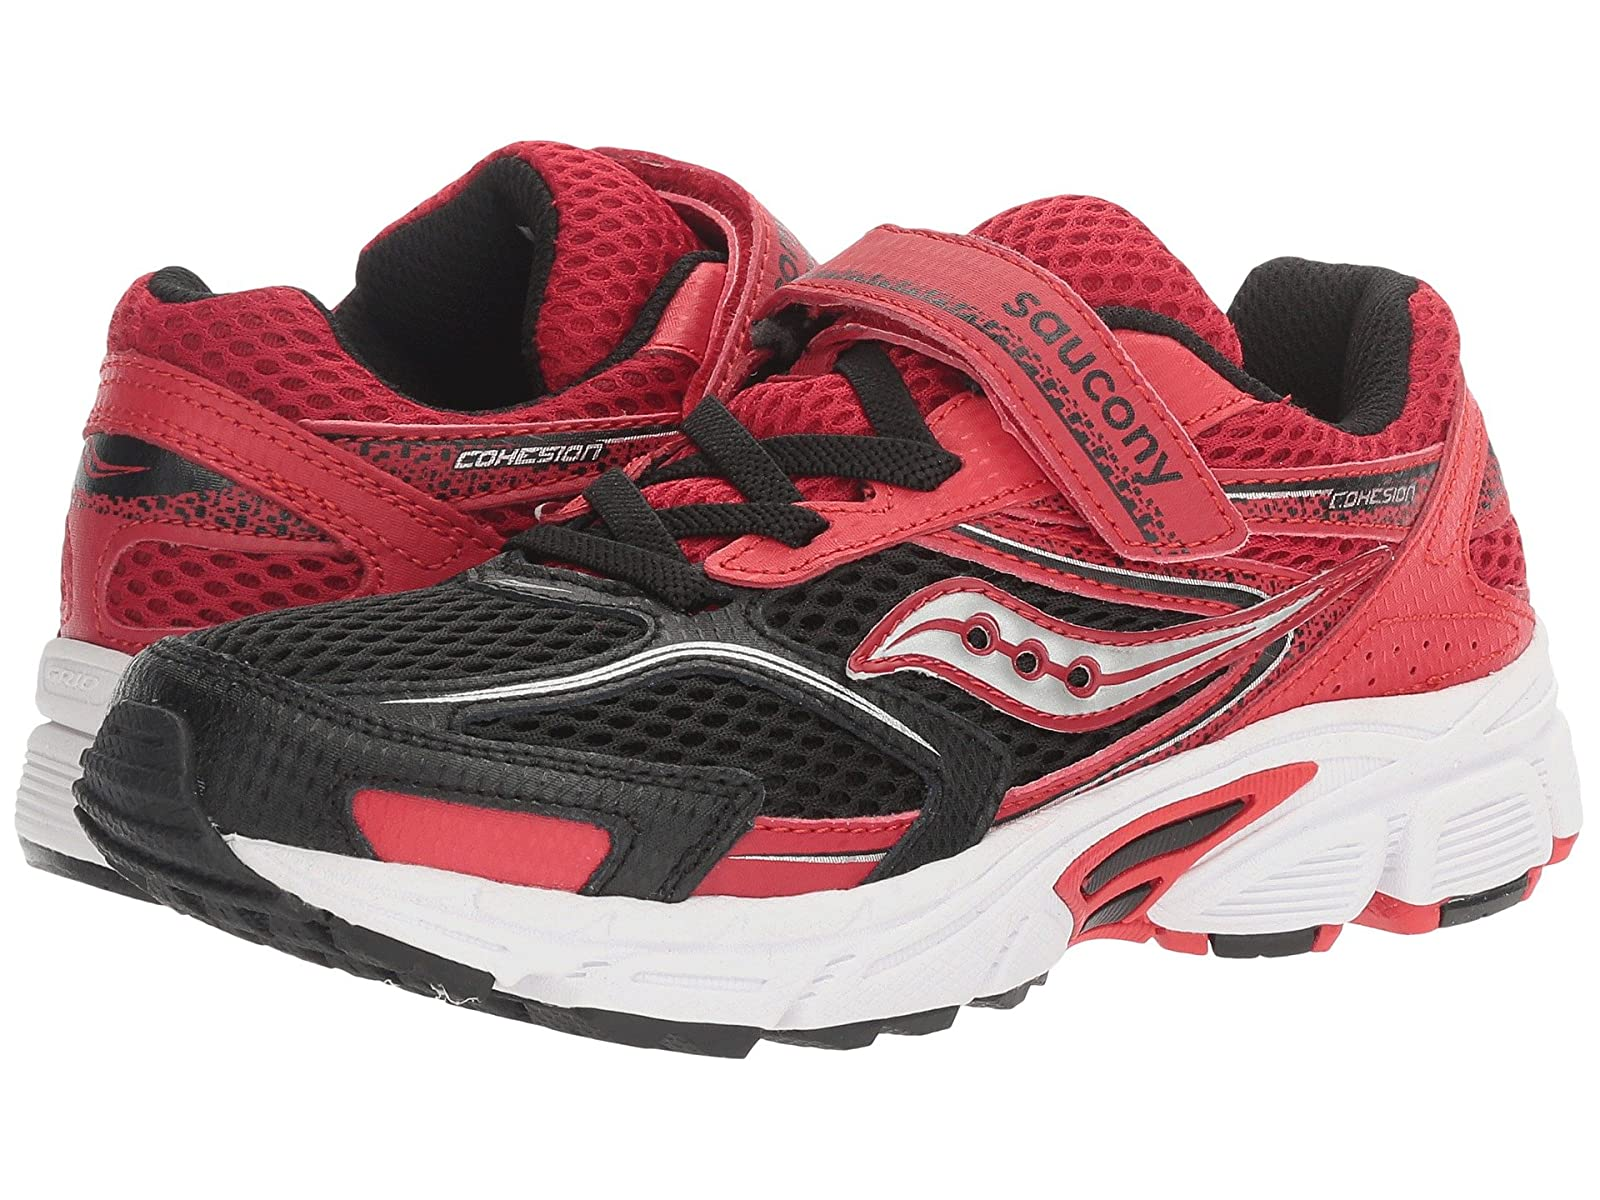 Saucony Kids Cohesion 9 A/C (Little Kid)Cheap and distinctive eye-catching shoes